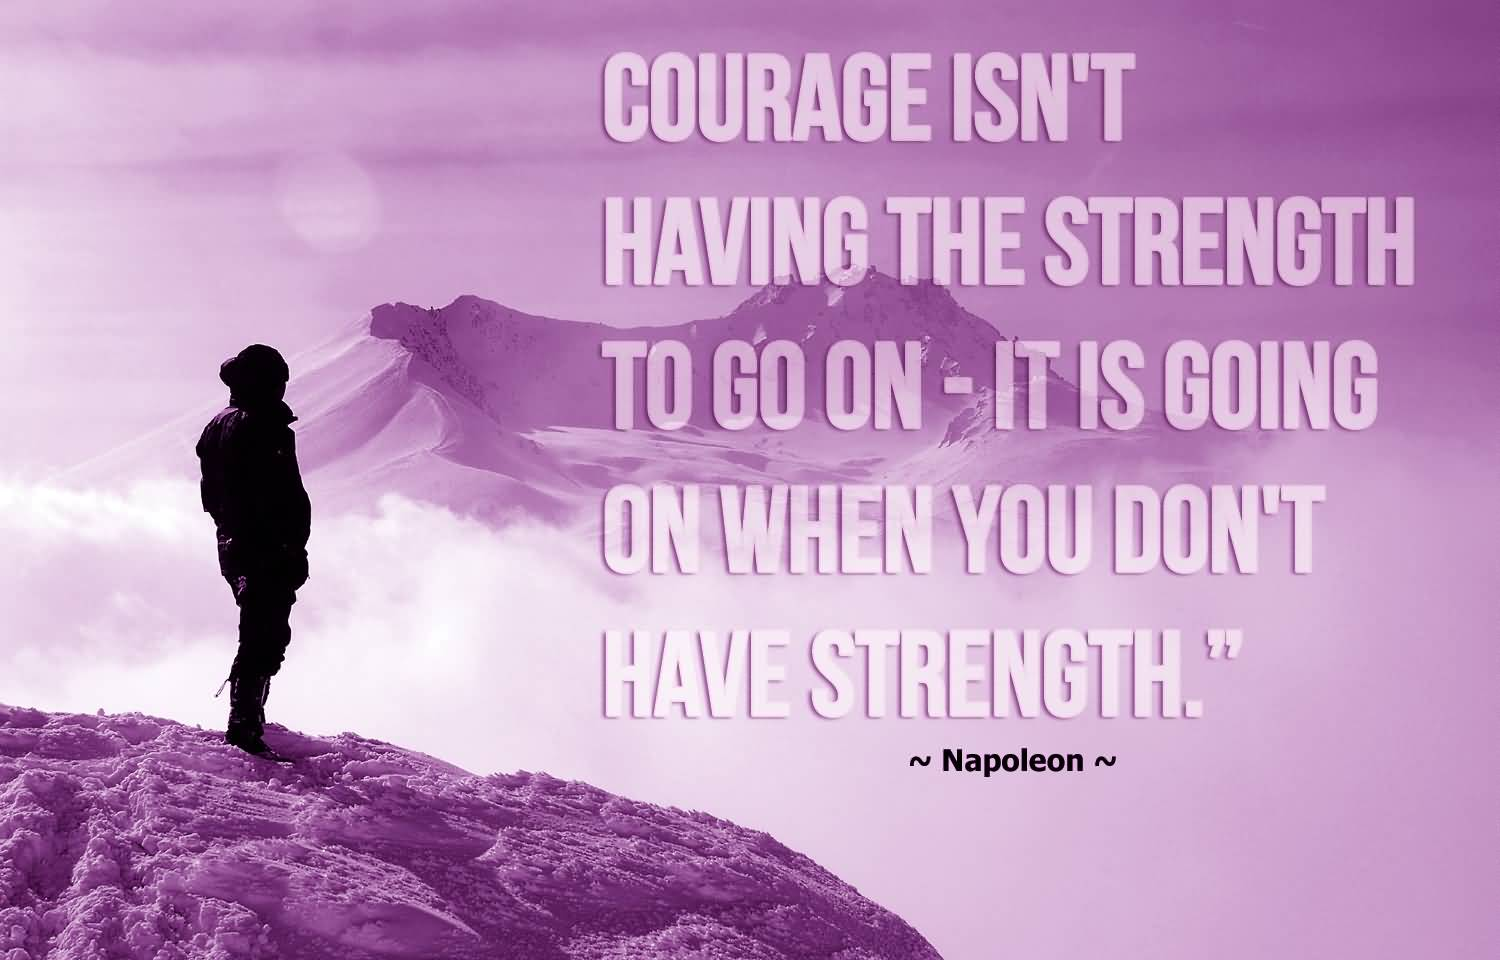 61+ Courage Quotes, Sayings About Being Courageous